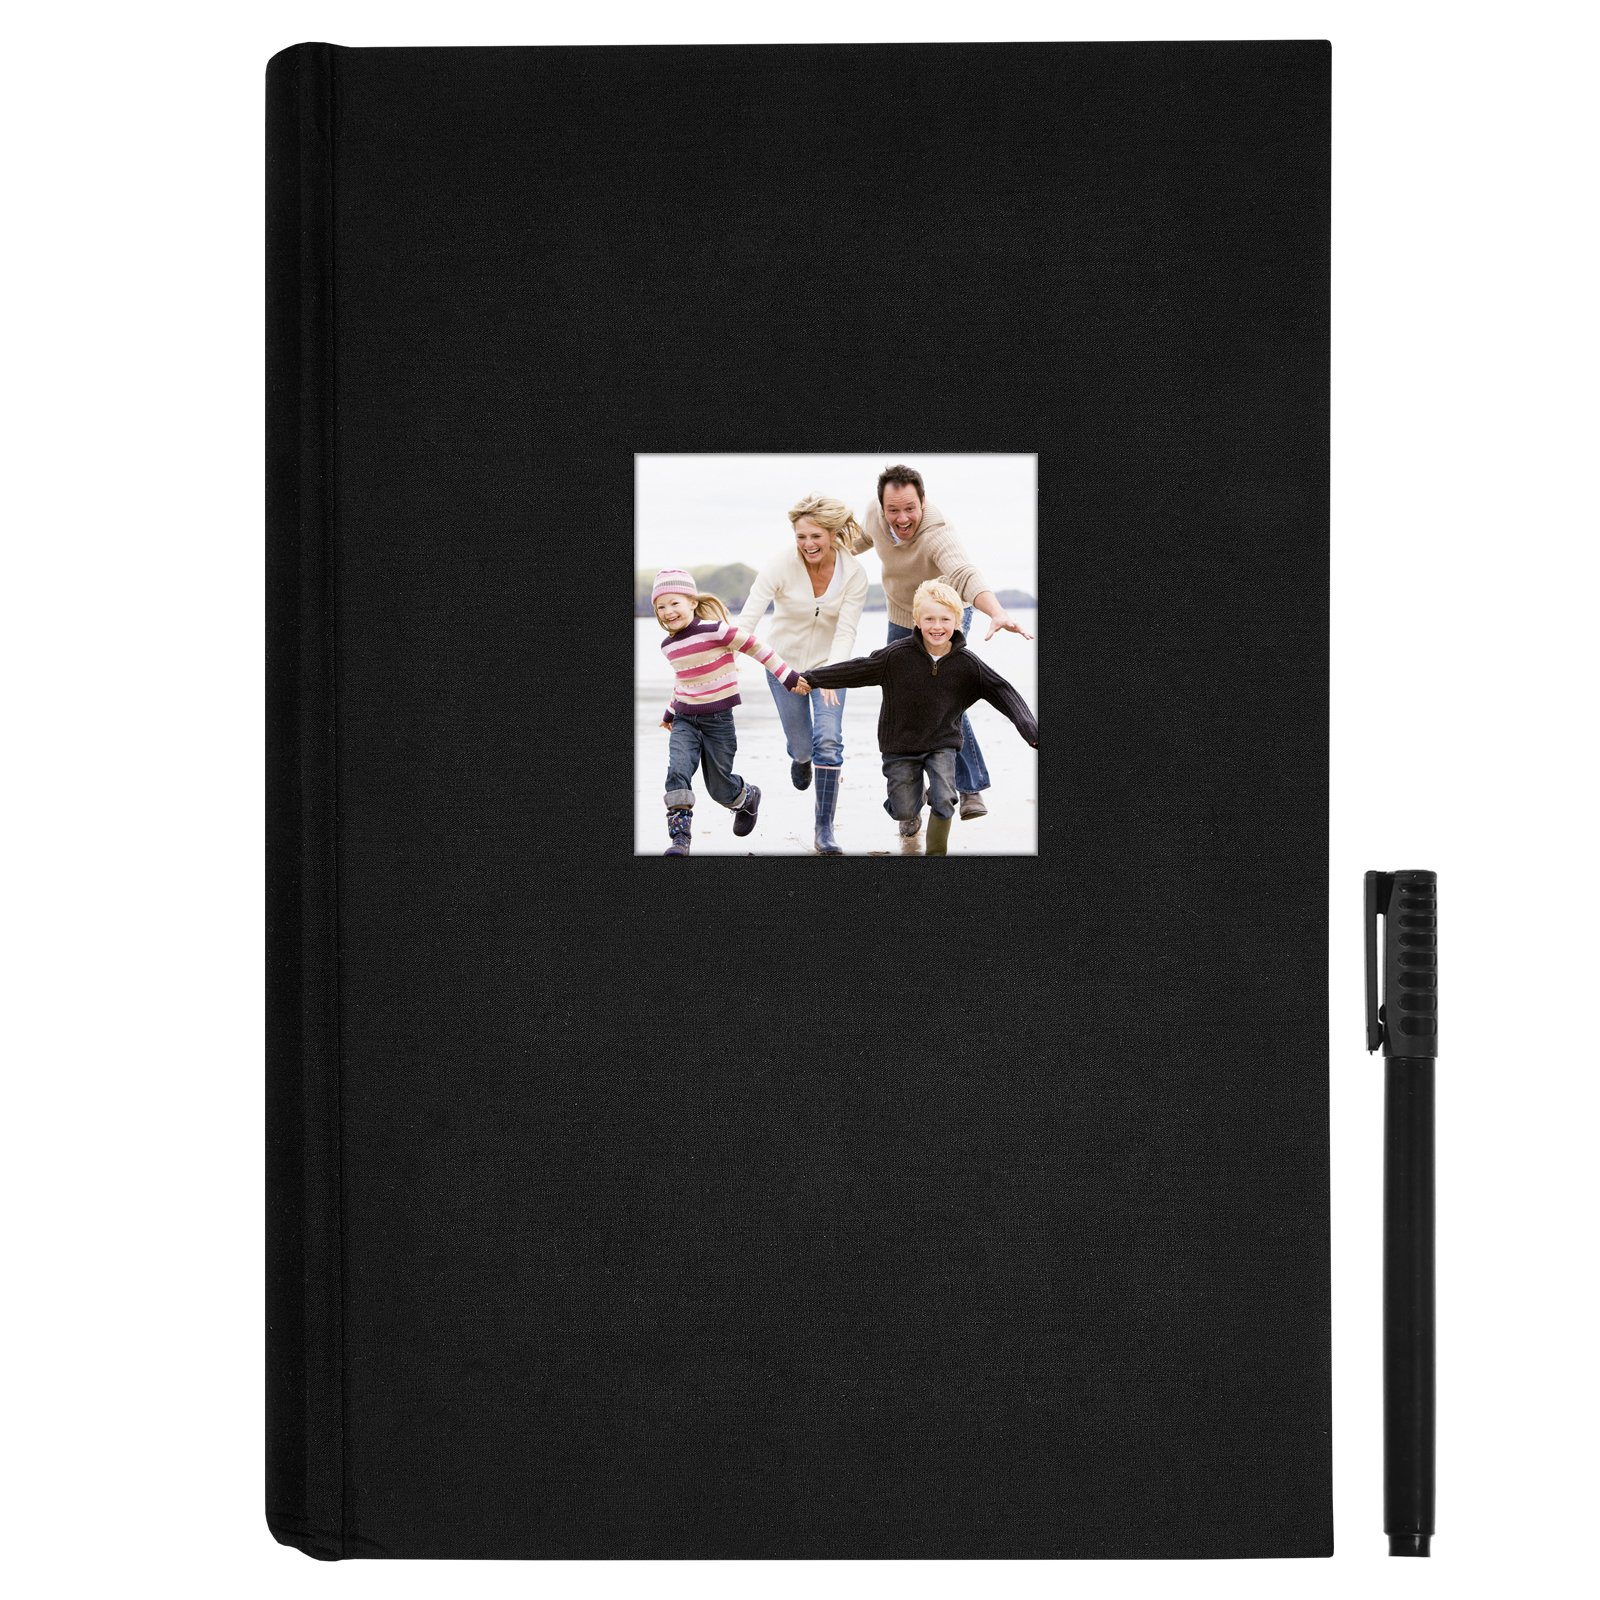 Americanflat Black Fabric Photo Album - Fits Photos Size 4x6 inches - Holds 300 Photos - Bonus Ultra-Fine Tip Pen Included